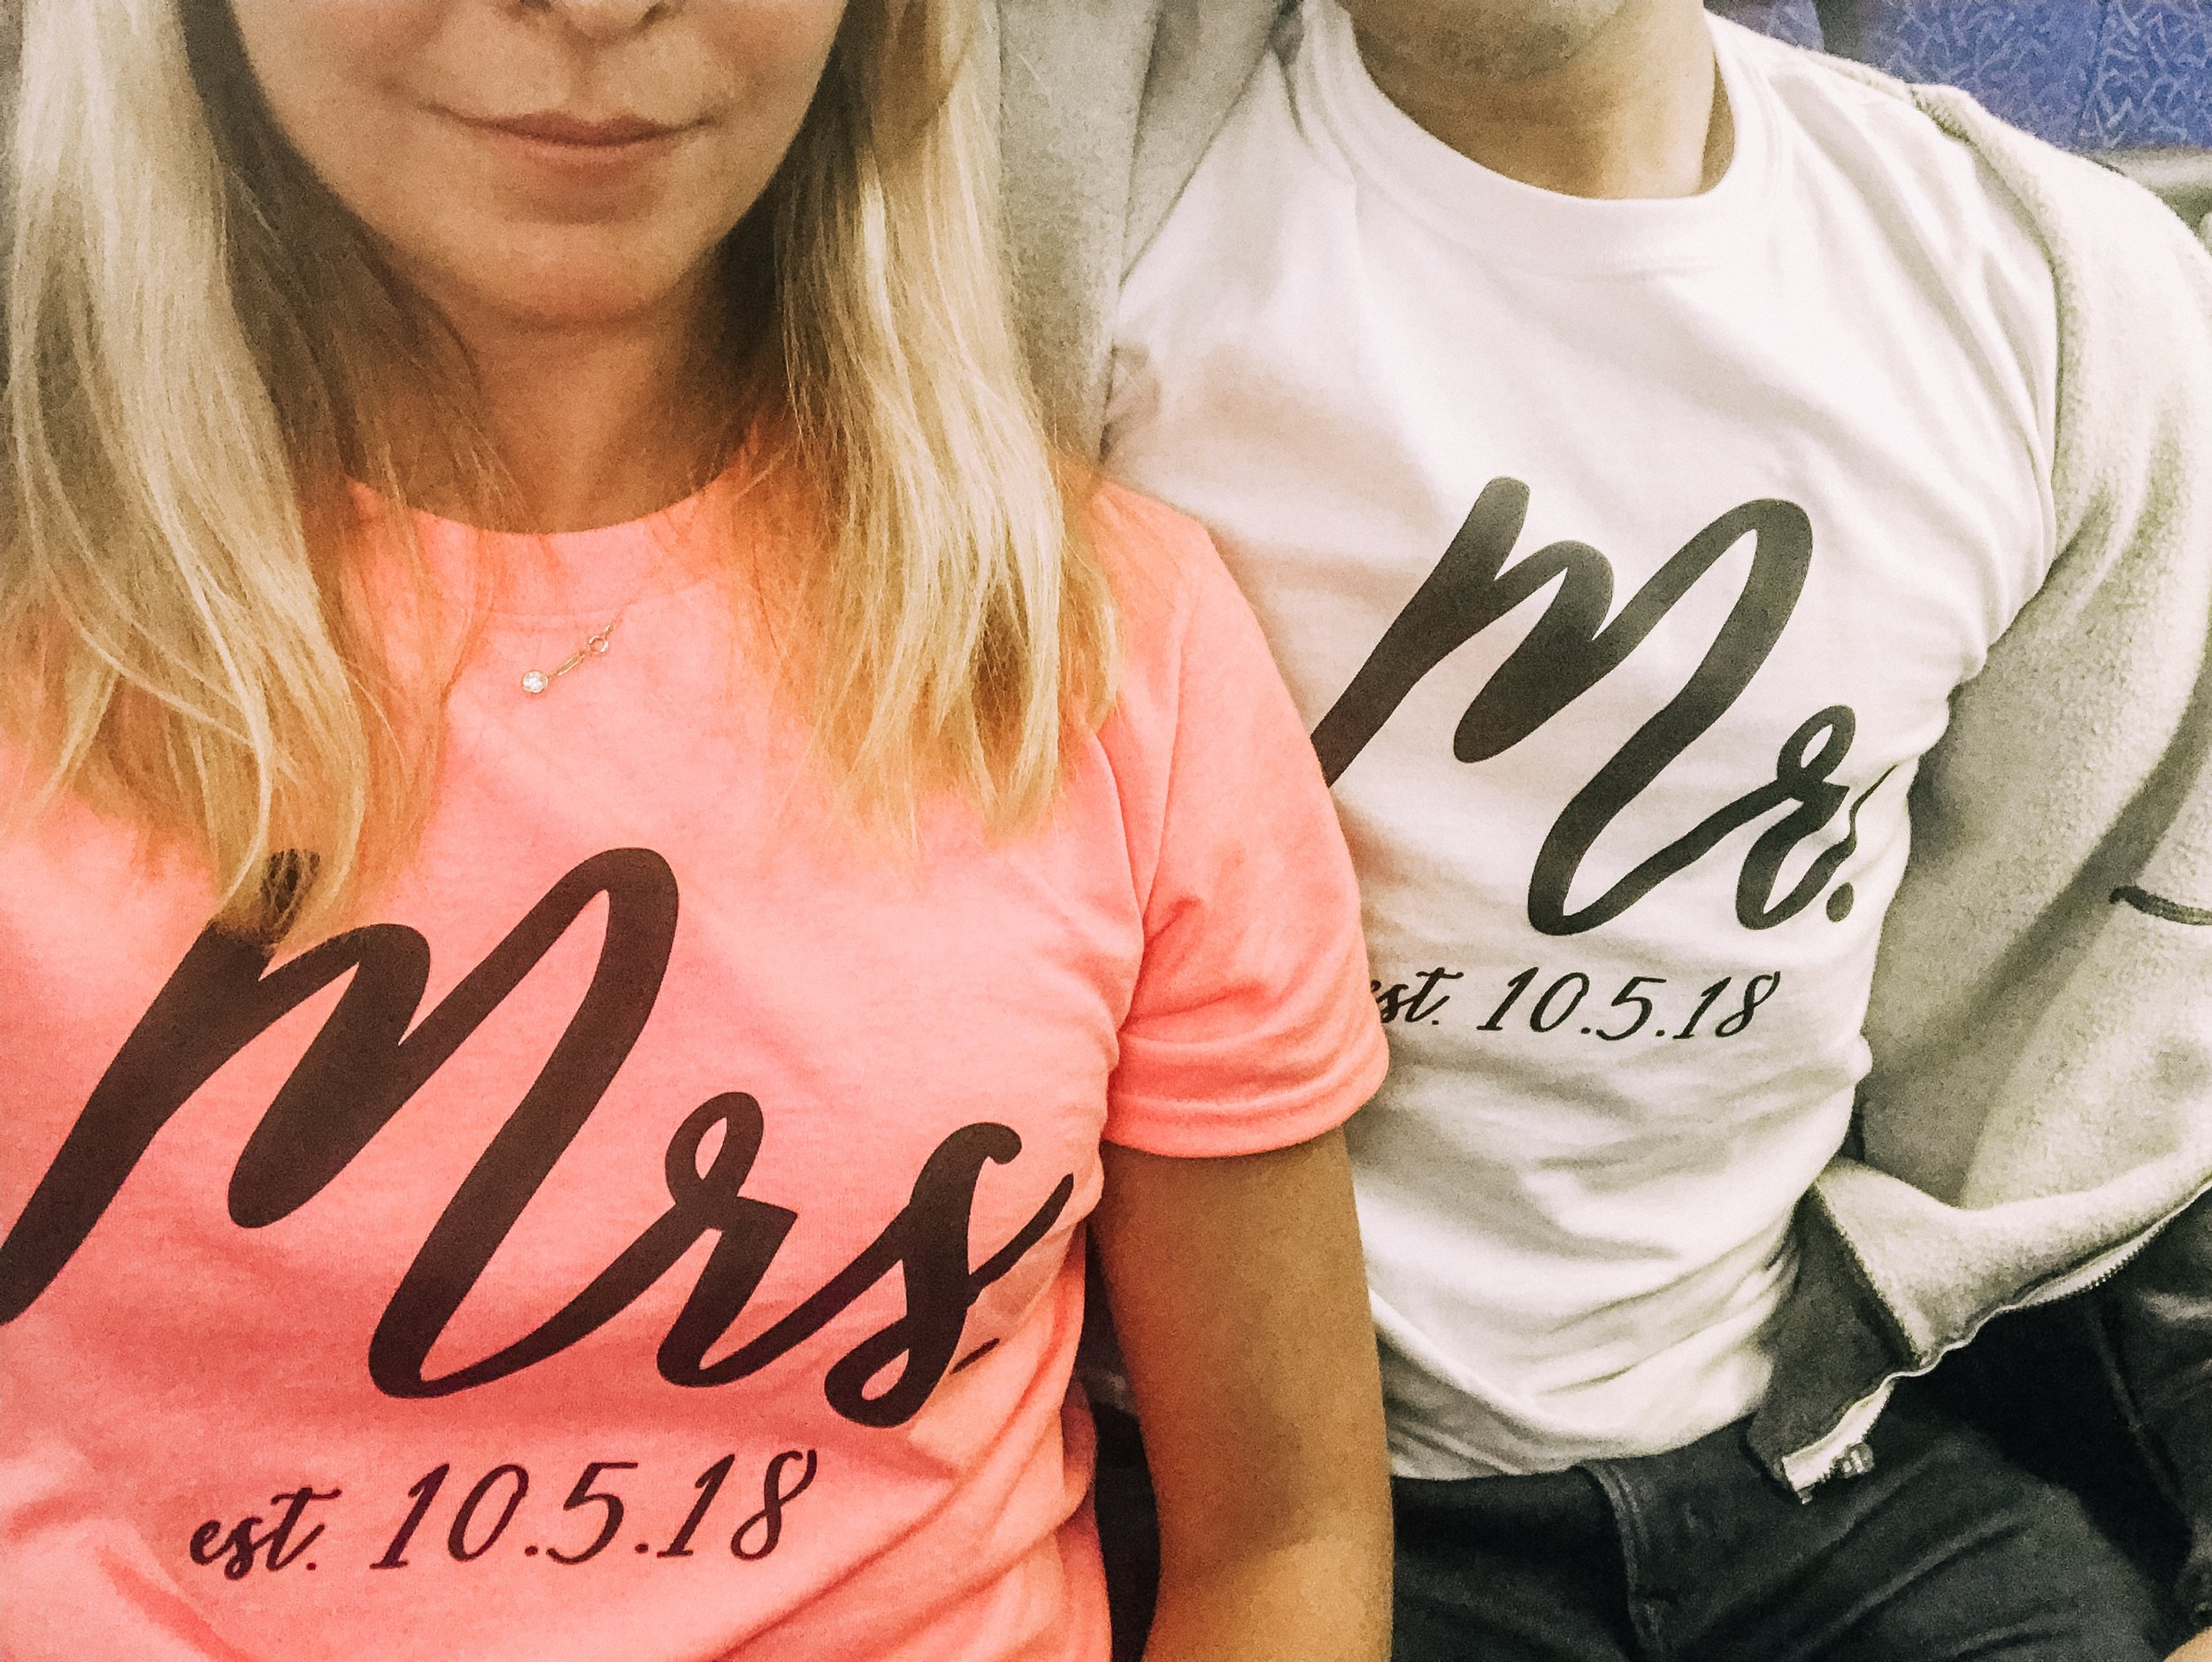 Oh did I mention, you can iron-on with Cricut?! Yes…I made these shirts for our honeymoon (amazon link below for iron-on vinyl)